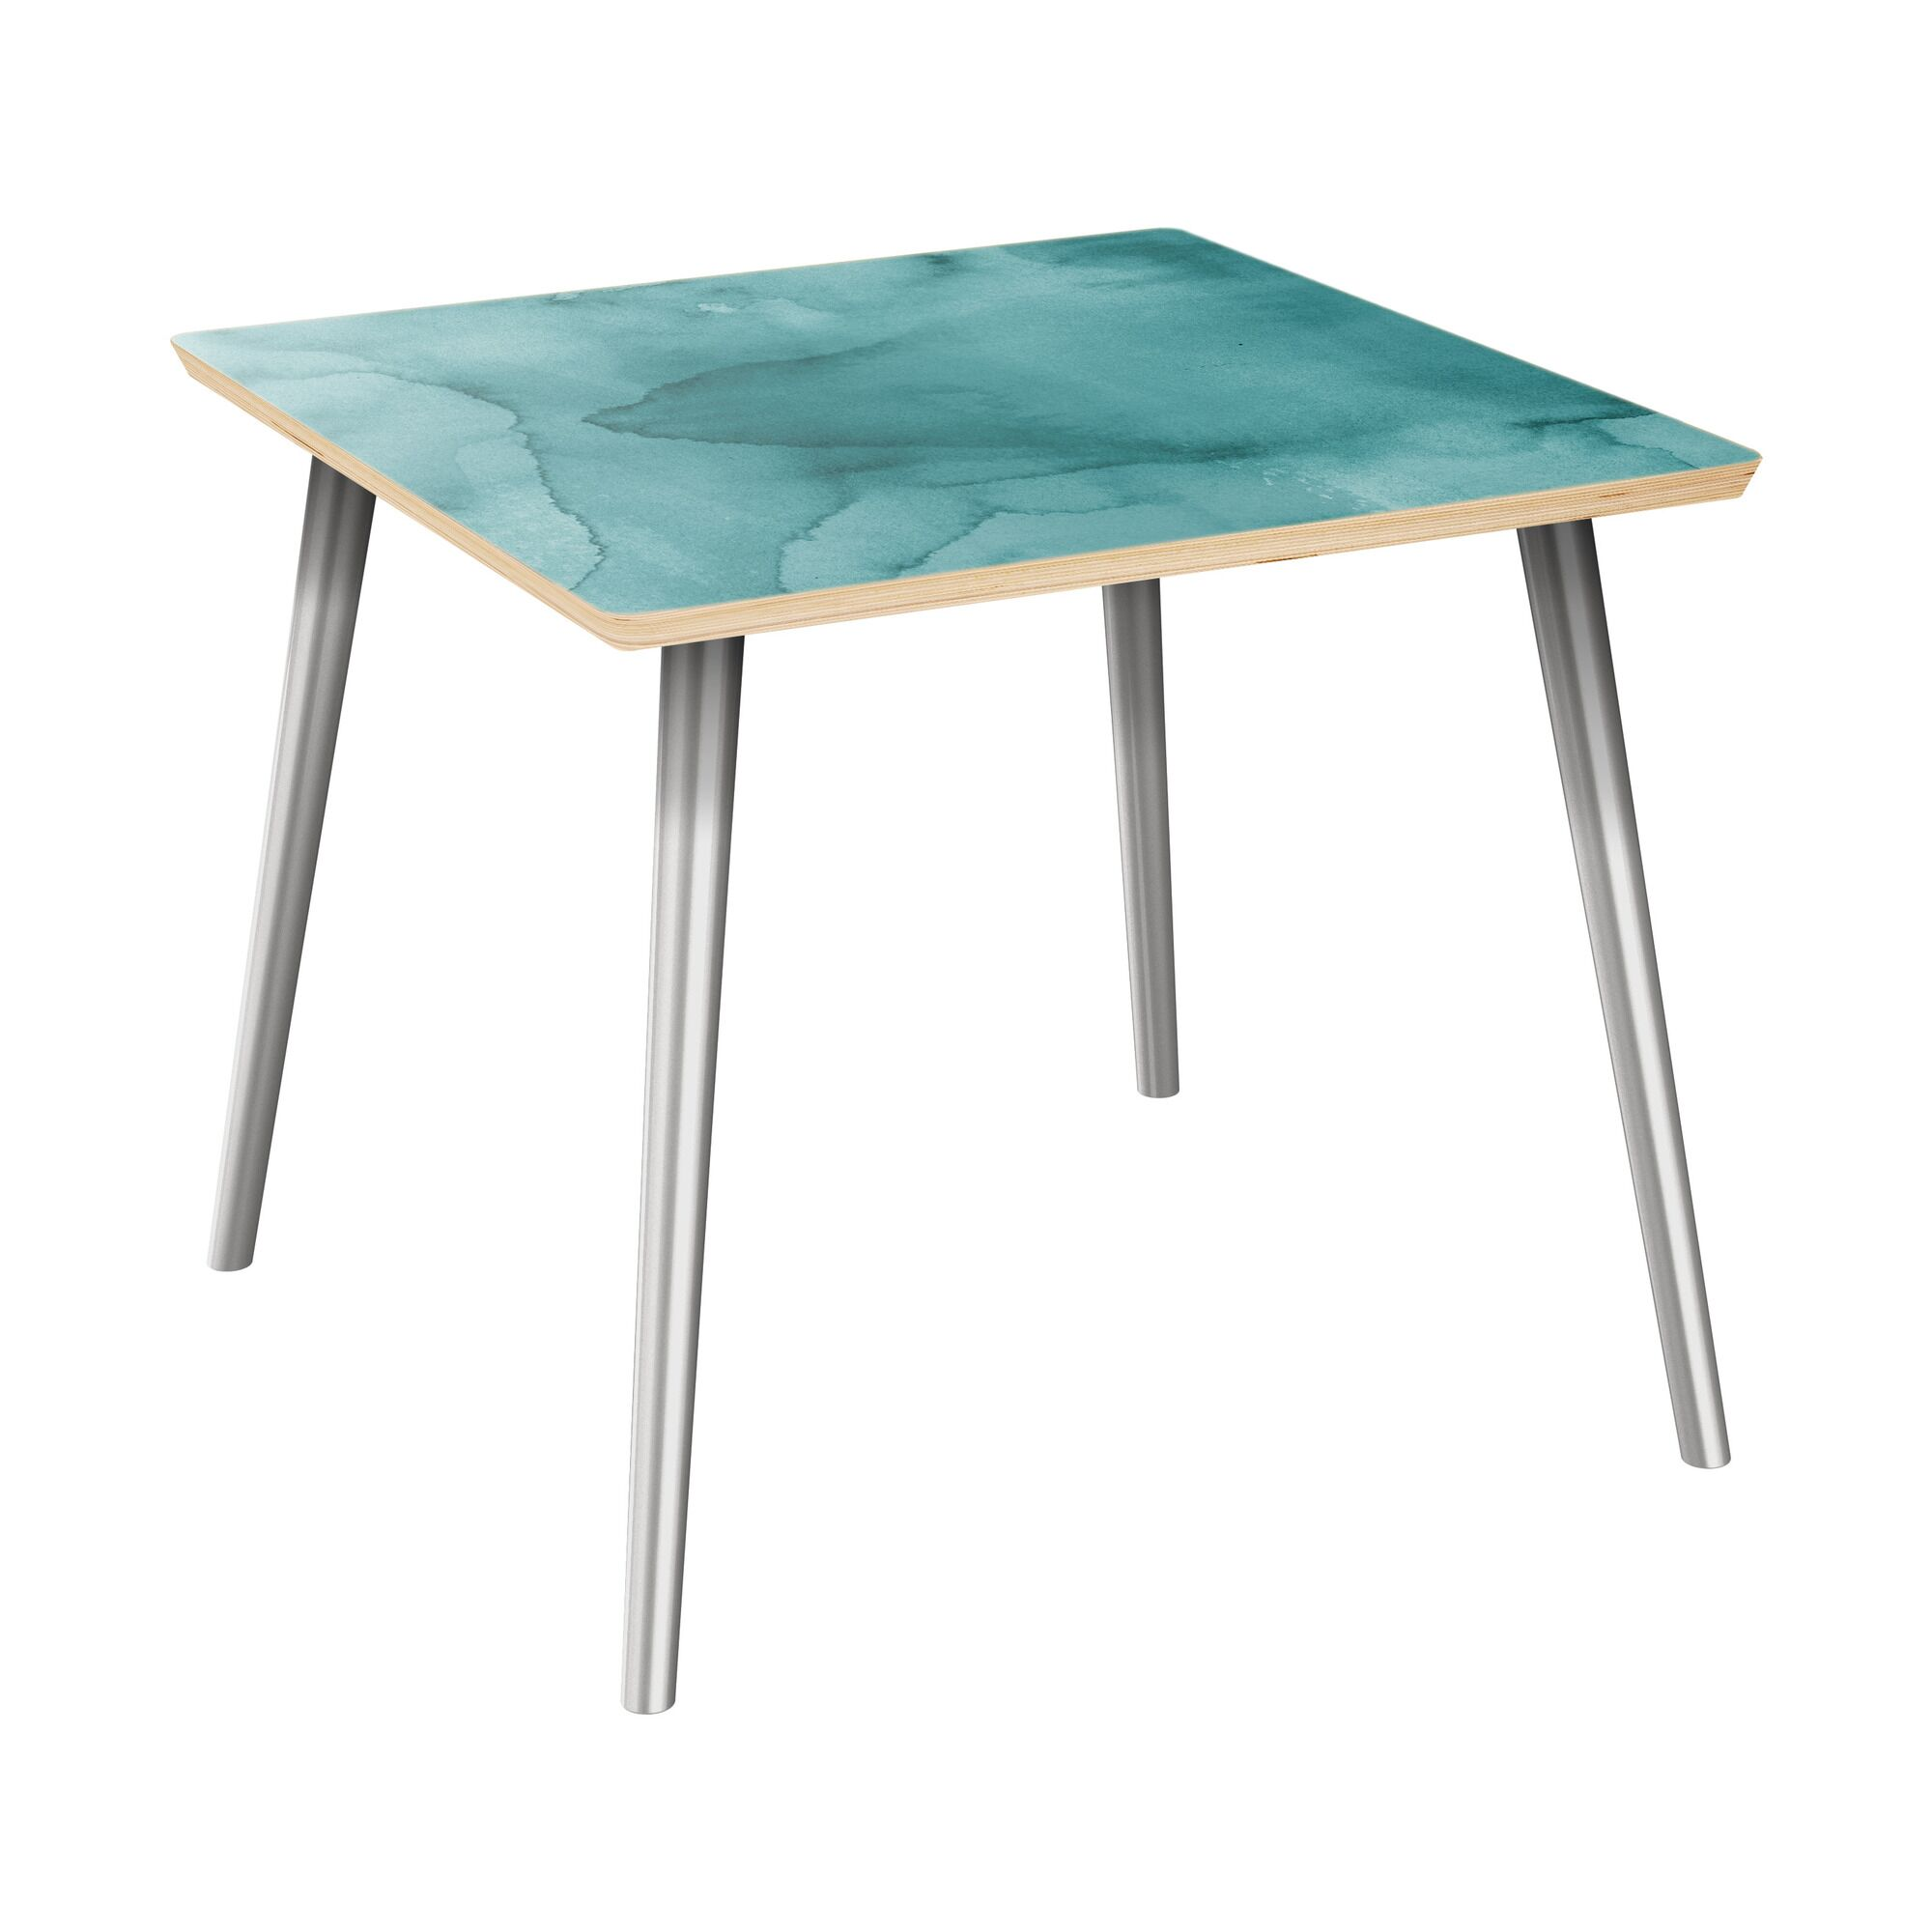 Ratzlaff End Table Table Top Boarder Color: Natural, Table Base Color: Chrome, Table Top Color: Turquoise